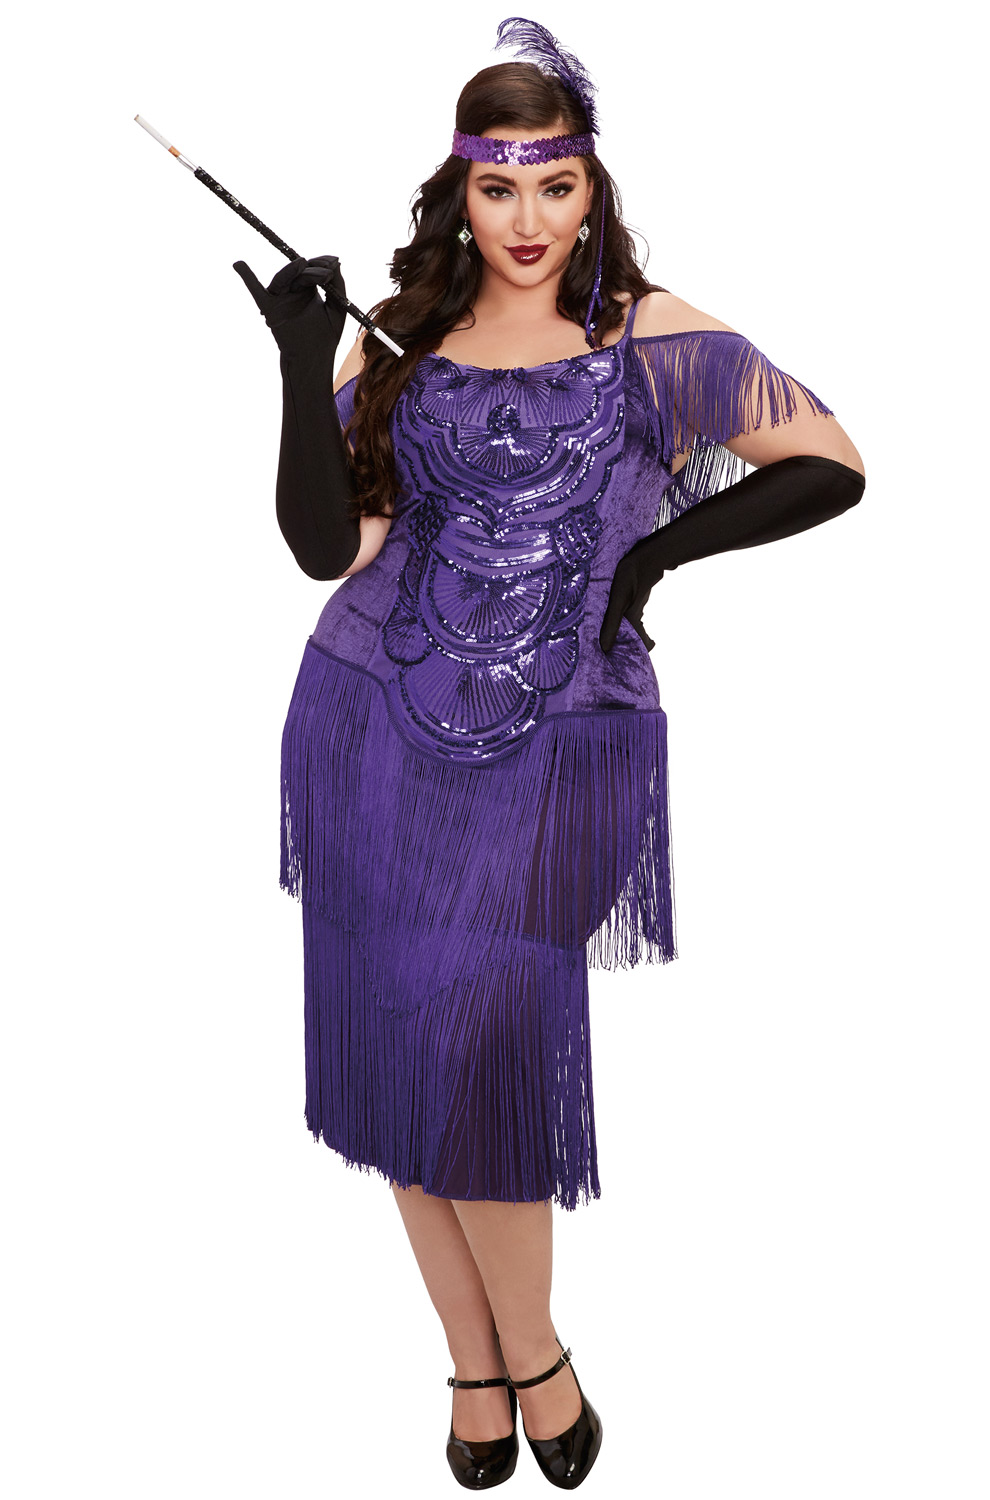 Details about Brand New Miss Ritz 1920s Flapper Plus Size Costume